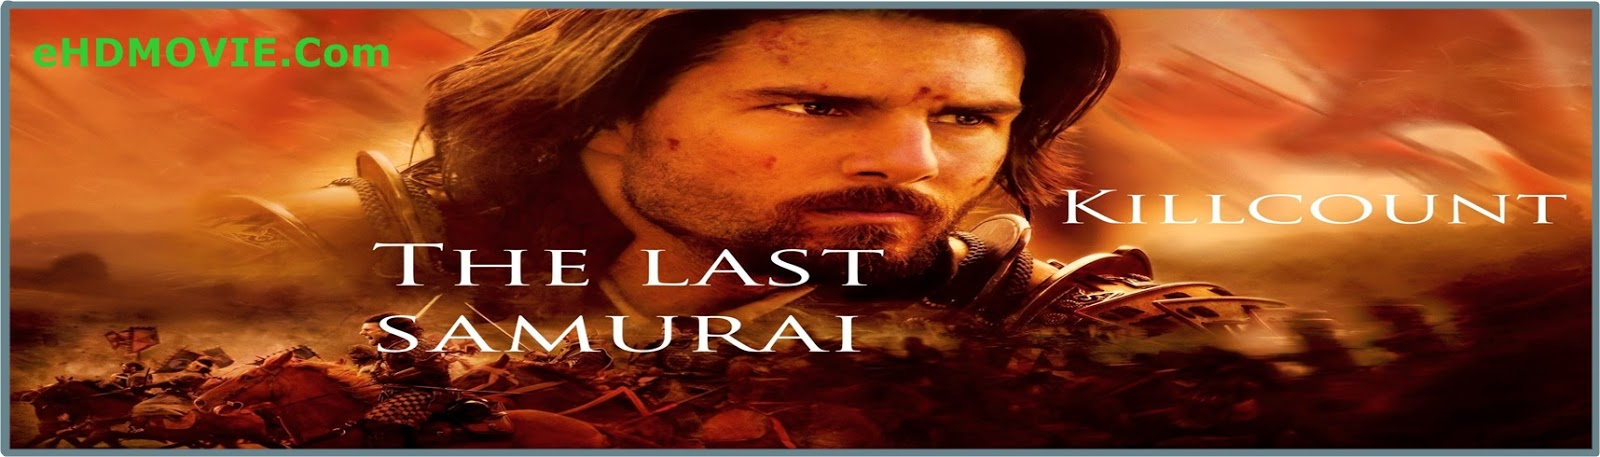 The Last Samurai 2003 Full Movie Dual Audio [Hindi – English] 720p - 480p ORG BRRip 500MB - 1.1GB ESubs Free Download